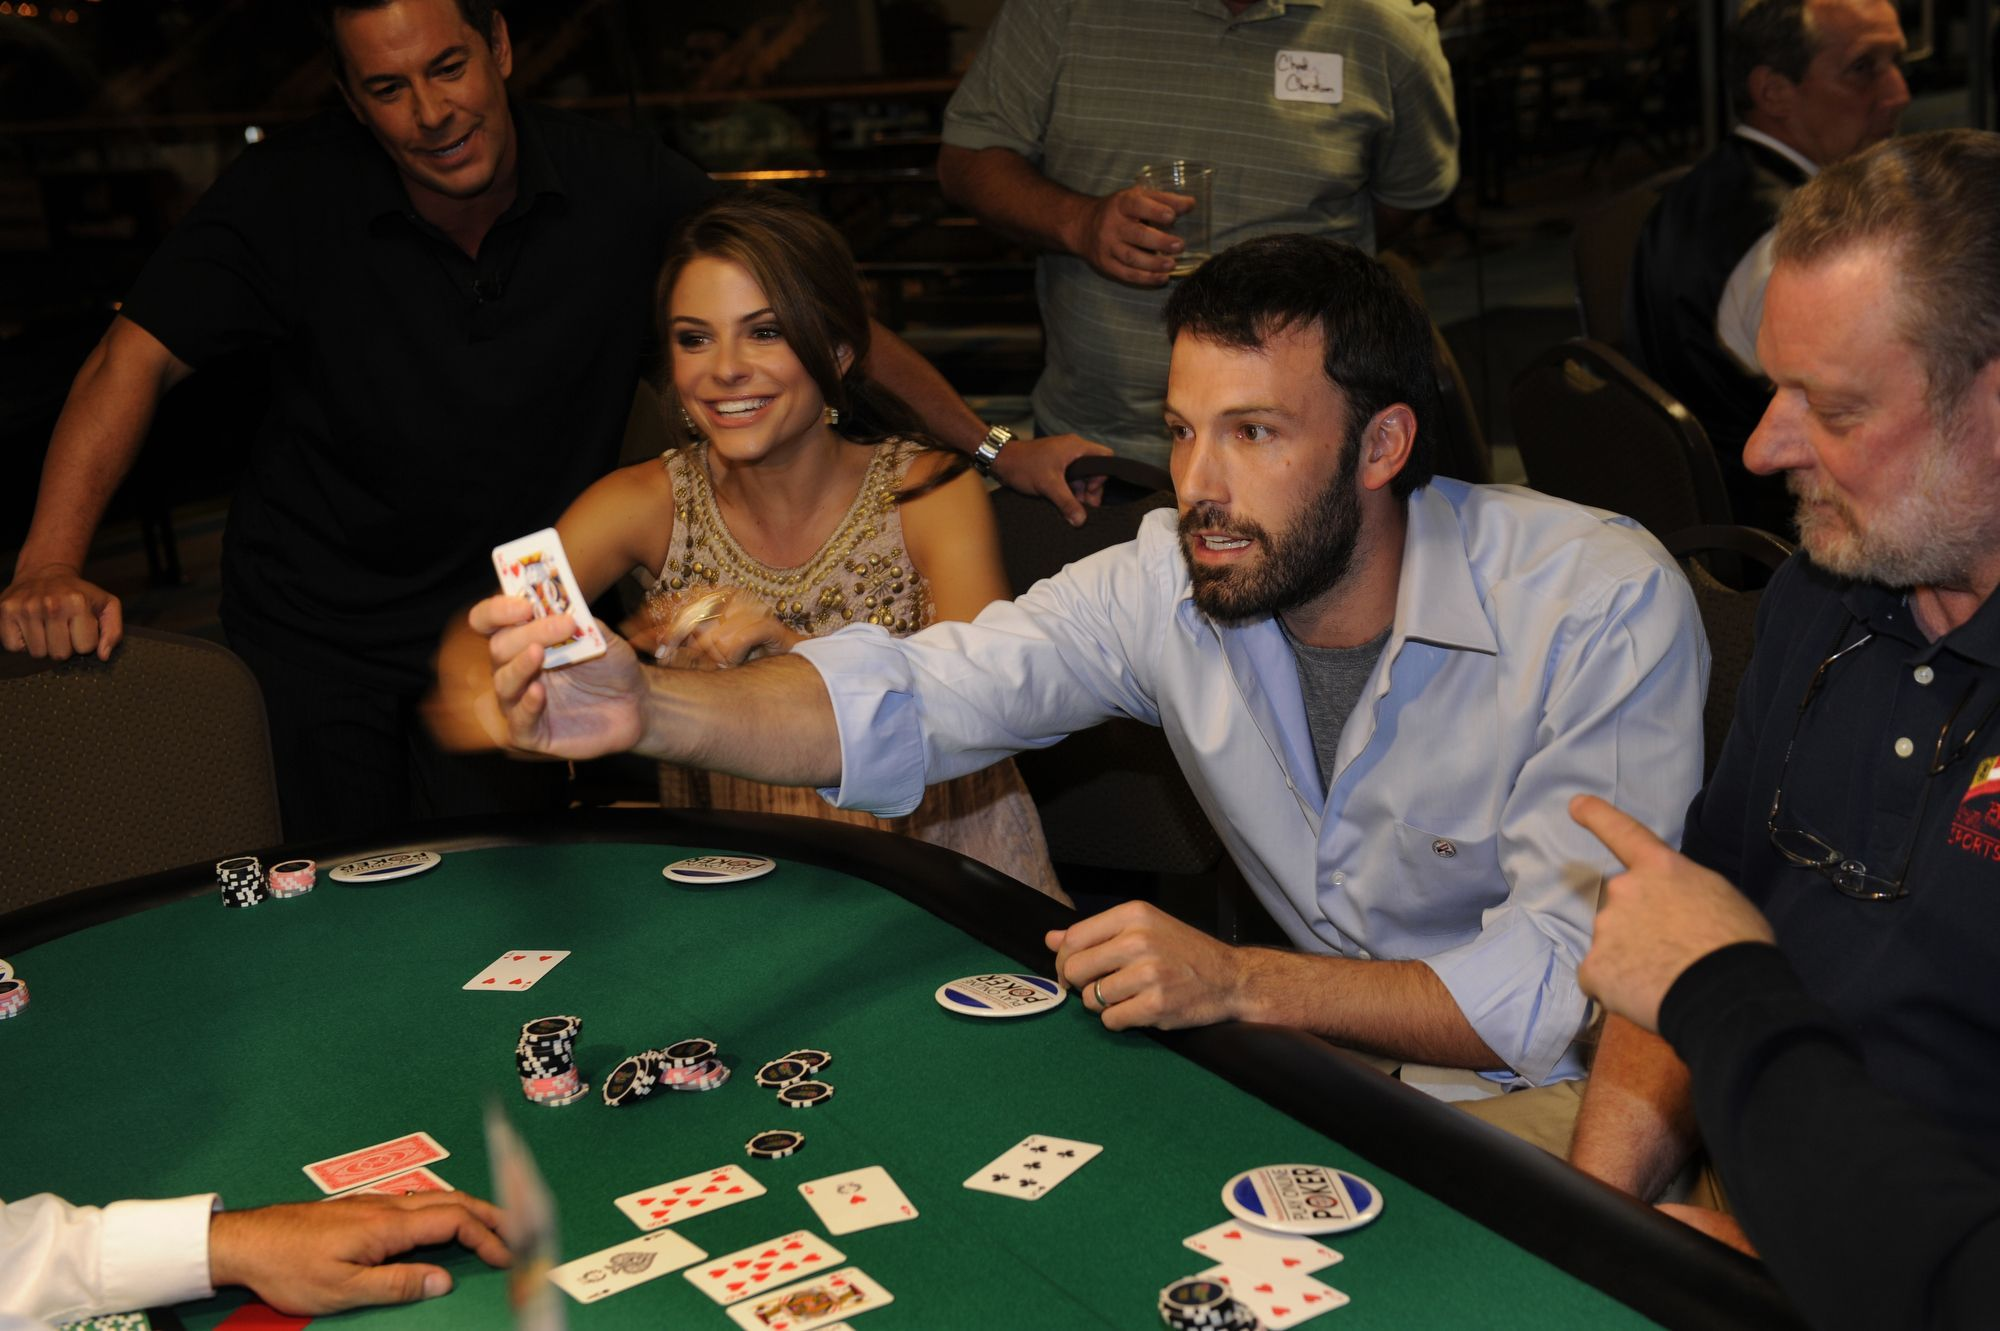 Ben Affleck having fun at the poker table